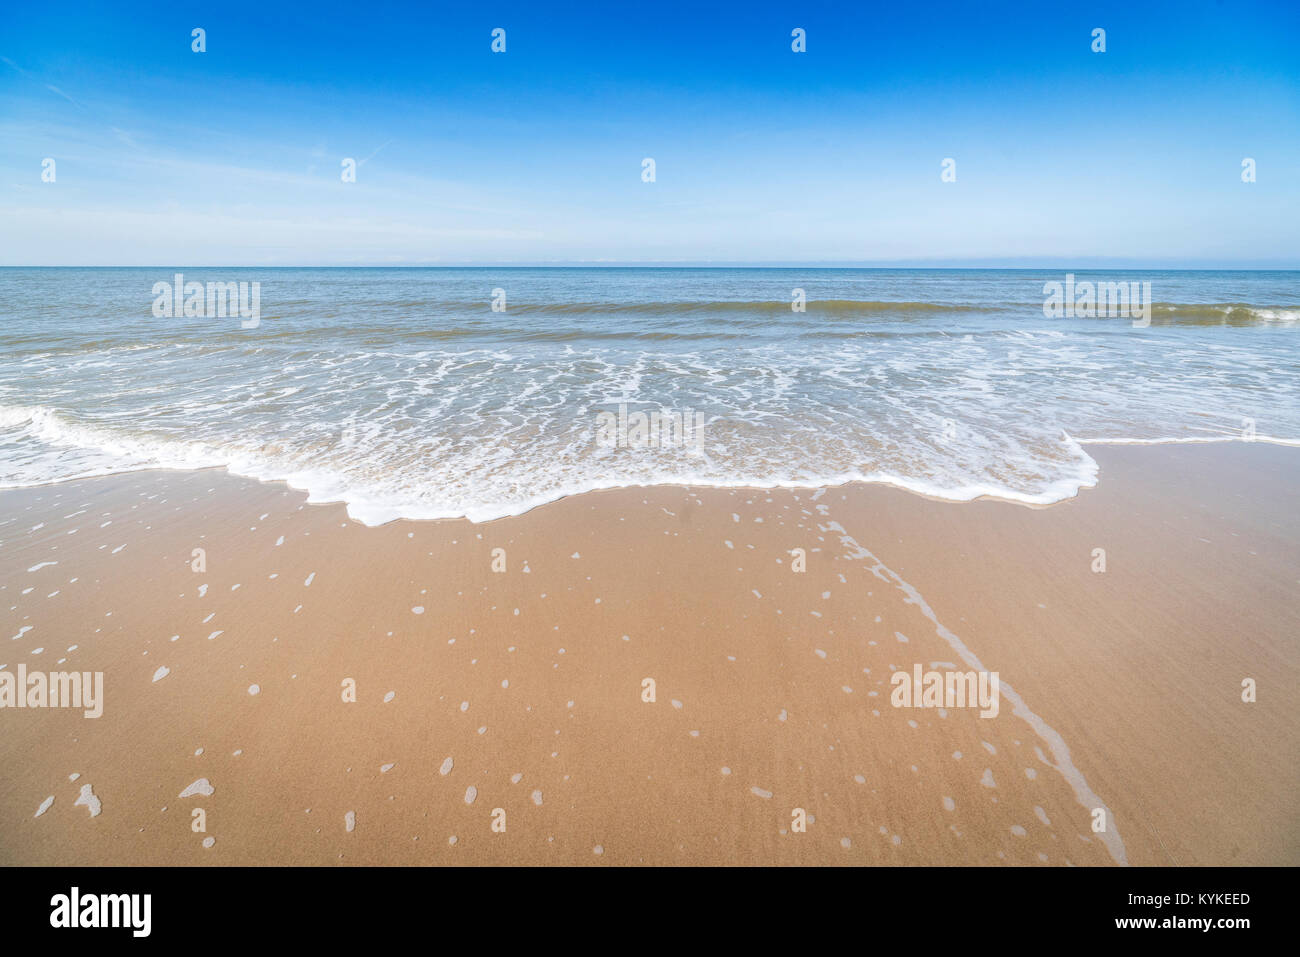 Beach with small waves coming in on the shore of a Scandinavian seaside - Stock Image